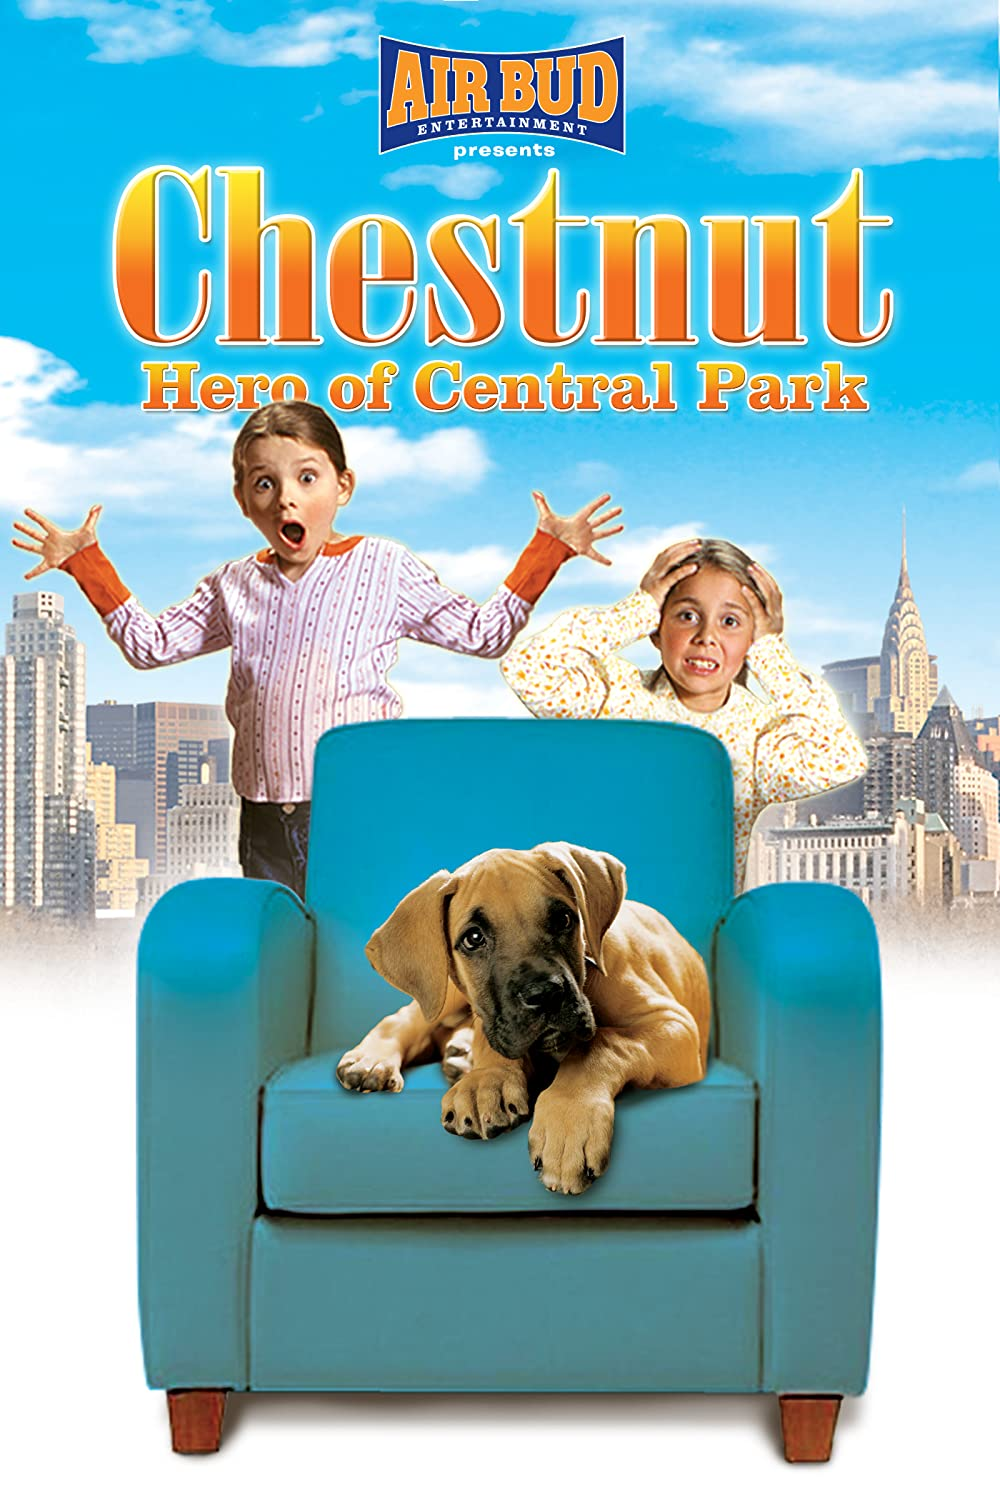 Chestnut: Hero of Central Park 2004 Hindi Dual Audio 305MB HDRip ESubs Download